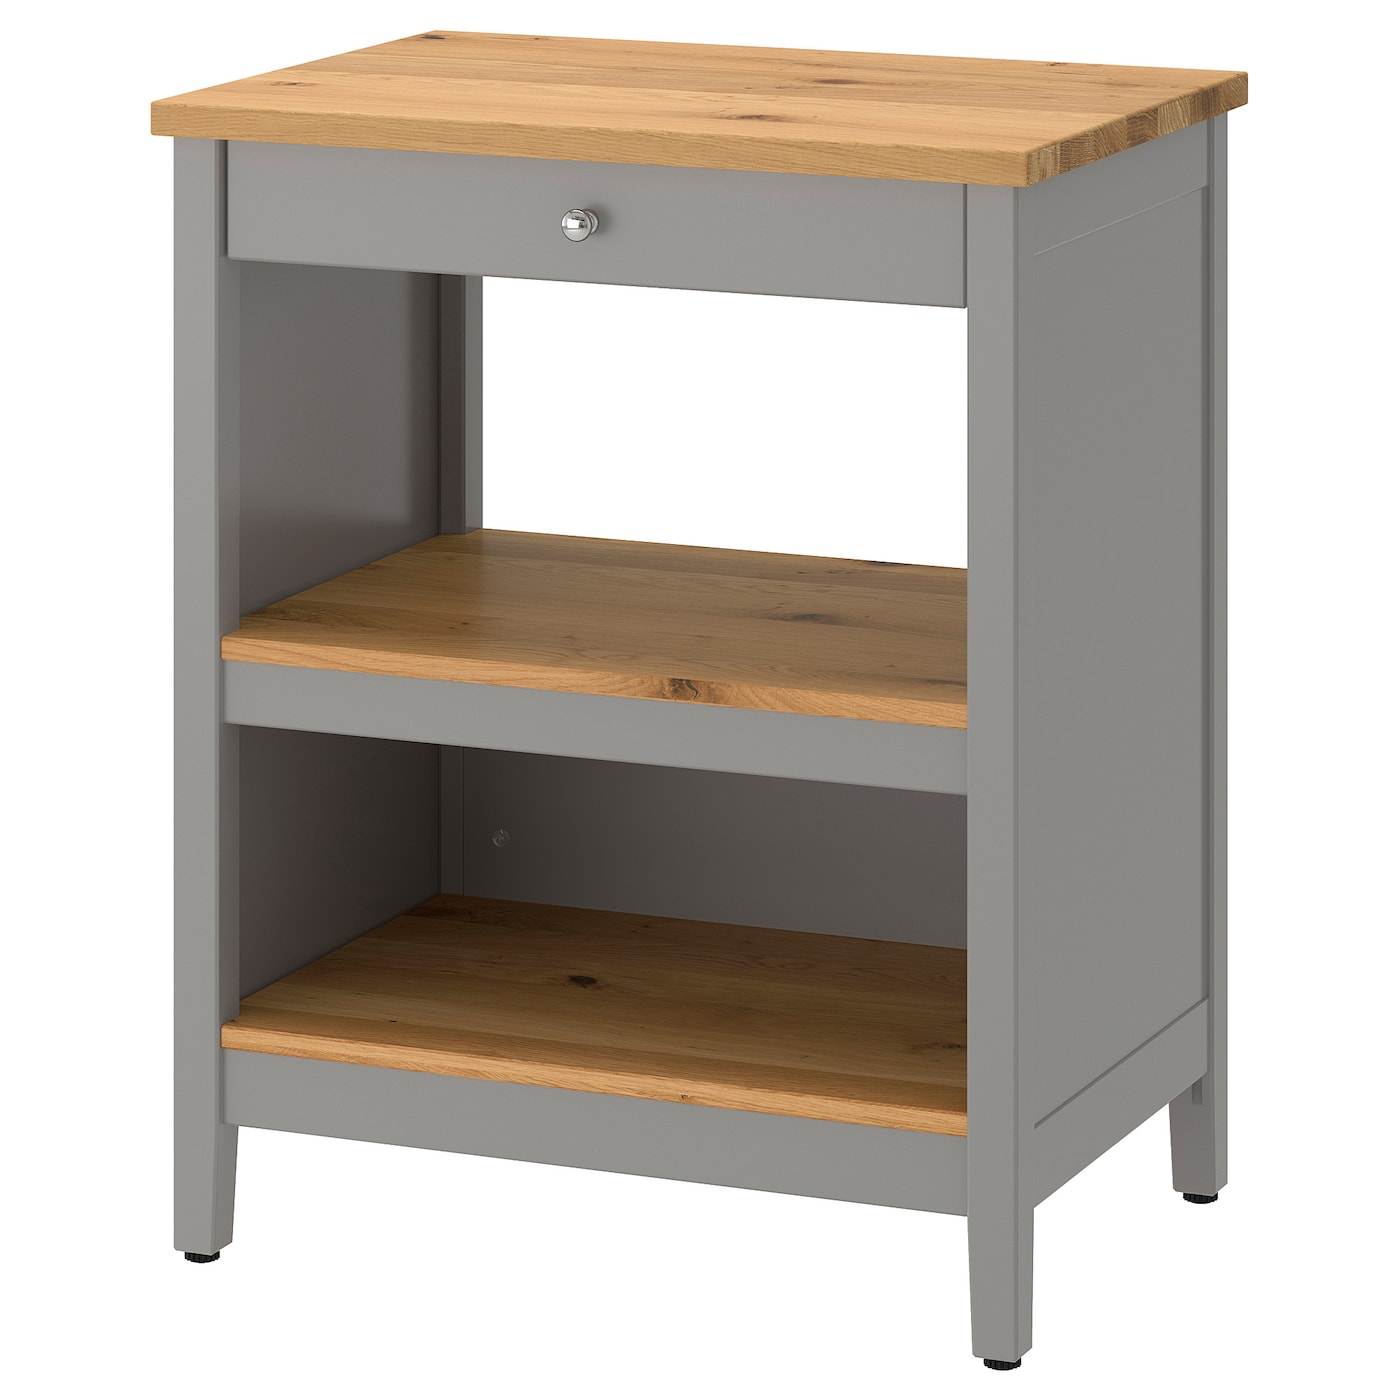 IKEA TORNVIKEN kitchen island Gives you extra storage, utility and work space.